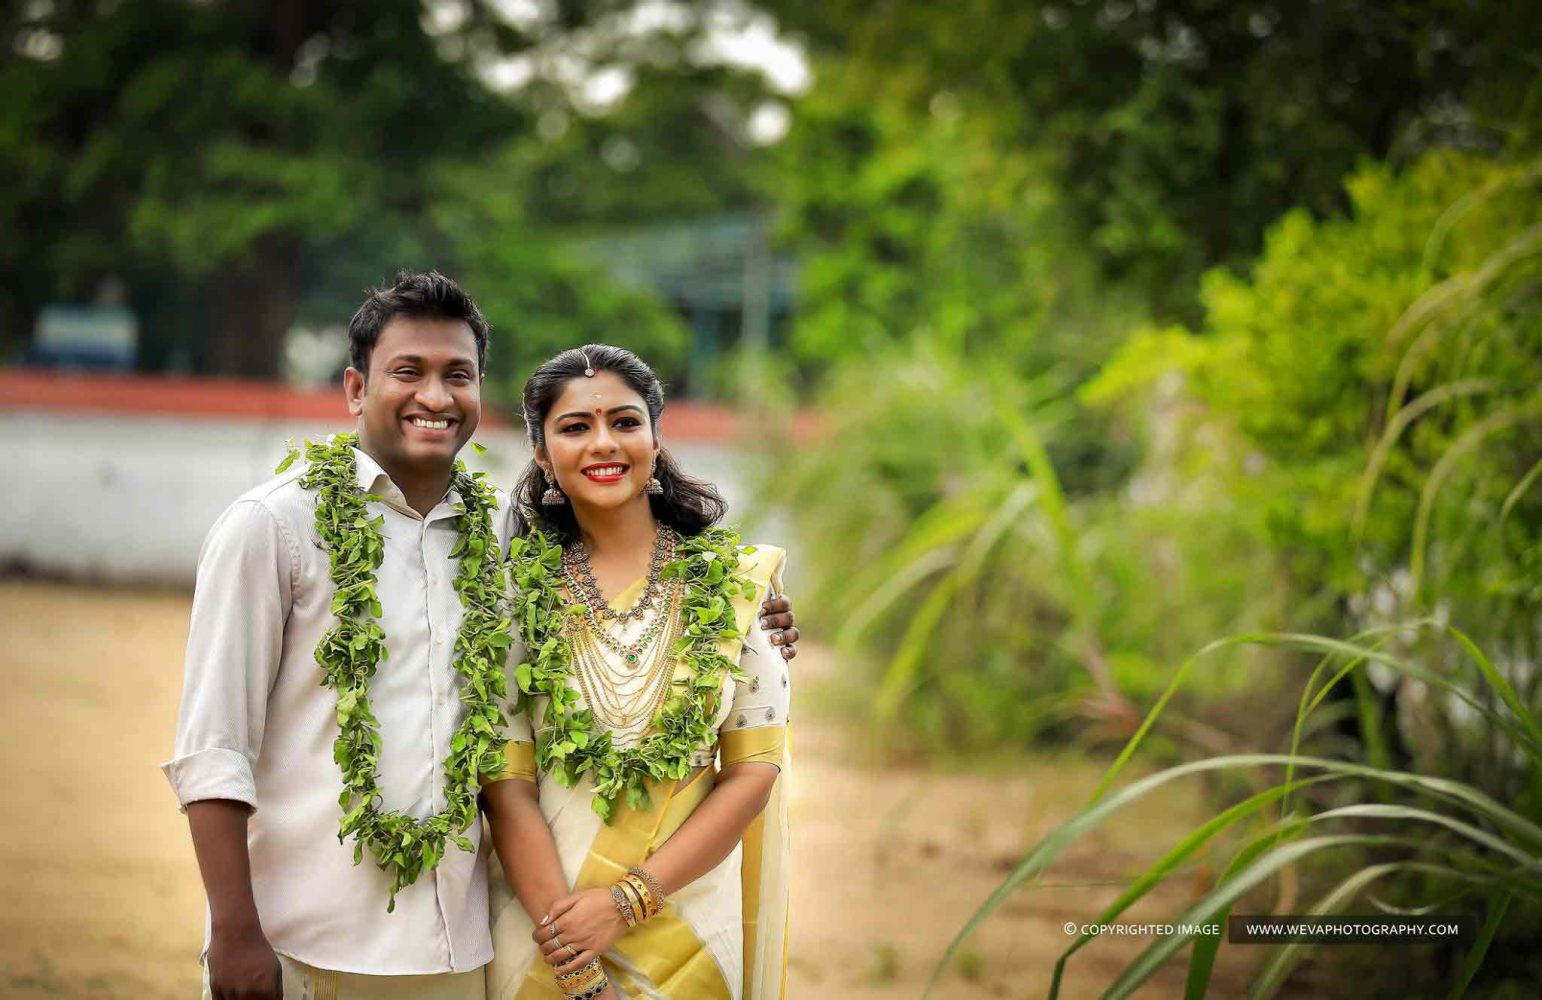 A Magnificent Occasion Of Togetherness : The Wedding Day Of Anend And Swati, Joining of hearts and souls. Weva wishes the cute couple with love that awakens each others soul with happiness and peace of mind.. ( Cinematographer of Neram, Premam & Anandam )